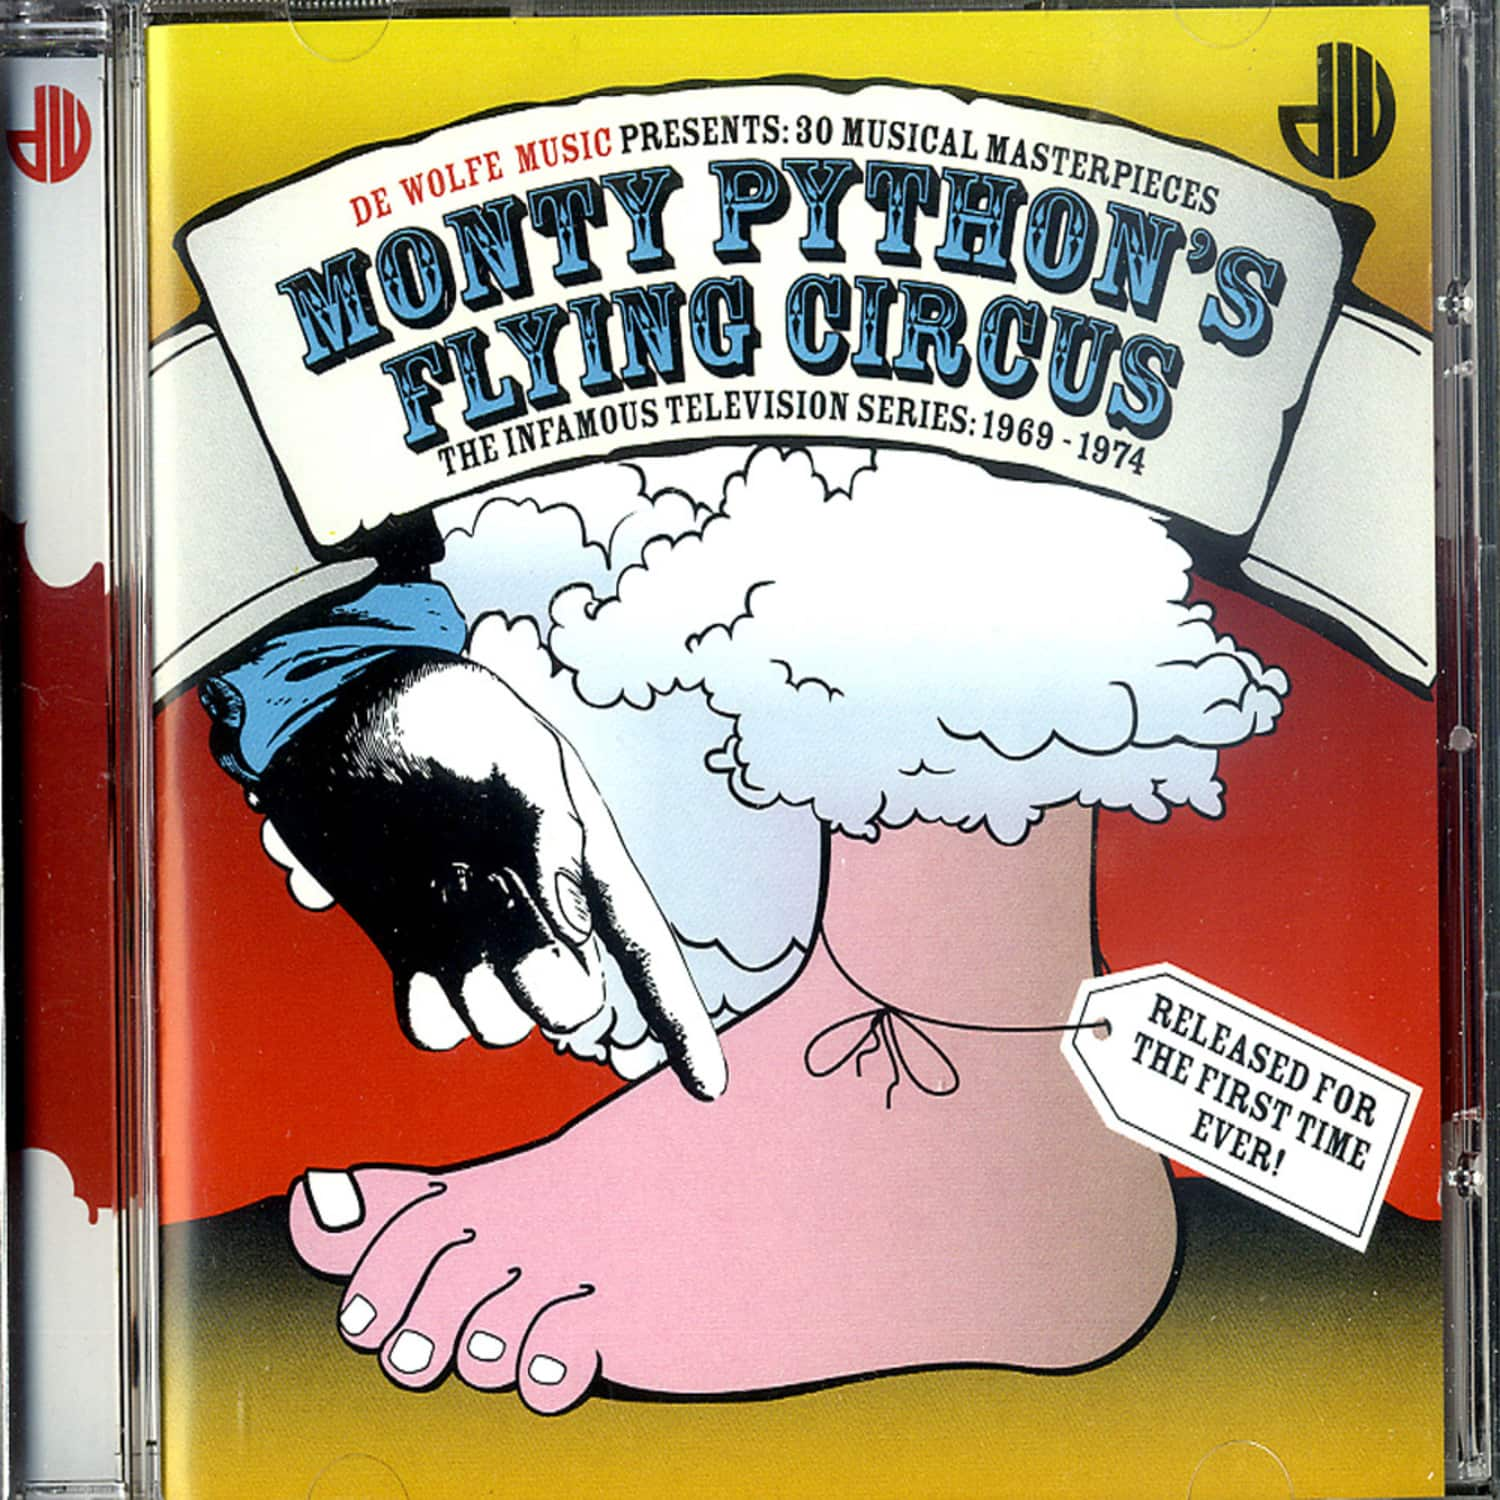 Monty Pythons Flying Circus Present - THE UNRELEASED TV SOUNDTRACK 1969 - 1974